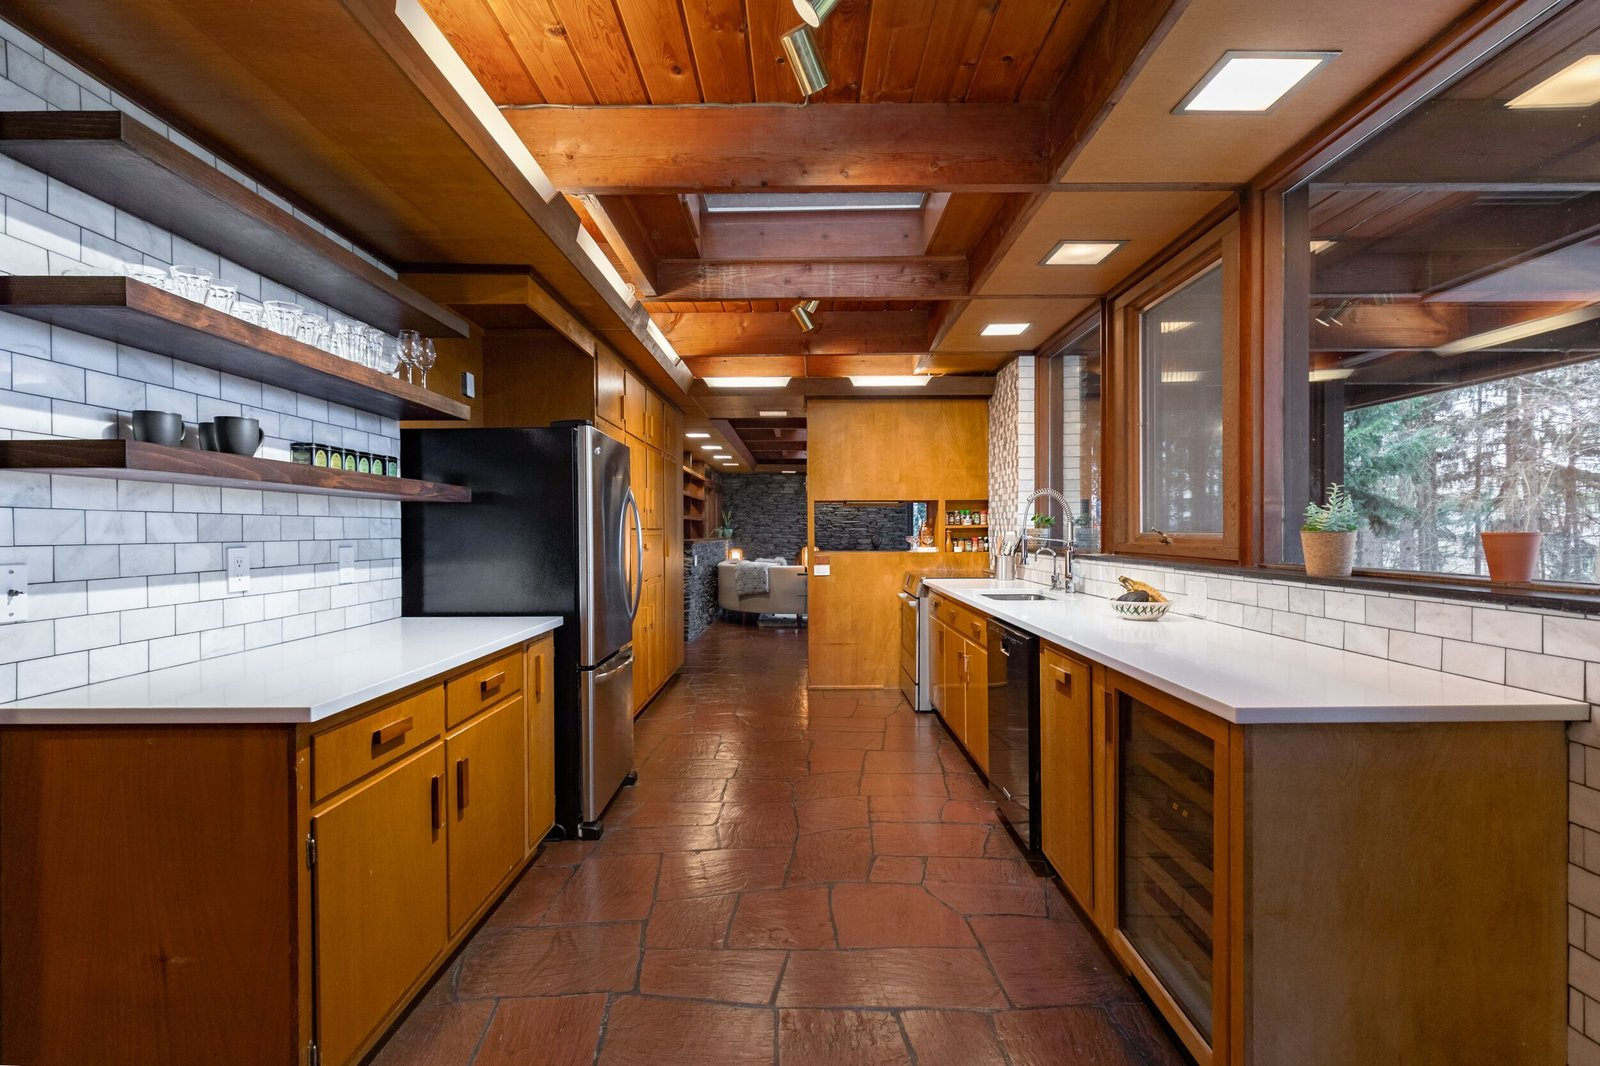 The spacious galley kitchen features original birch cabinetry alongside modern upgrades, including marble subway tile and stainless steel appliances. Windows stretch along one wall, connecting the space with the lush surroundings.  Photo 5 of 8 in A Midcentury Retreat by Architect and Usonia Founder Aaron Resnick Lists for $999K